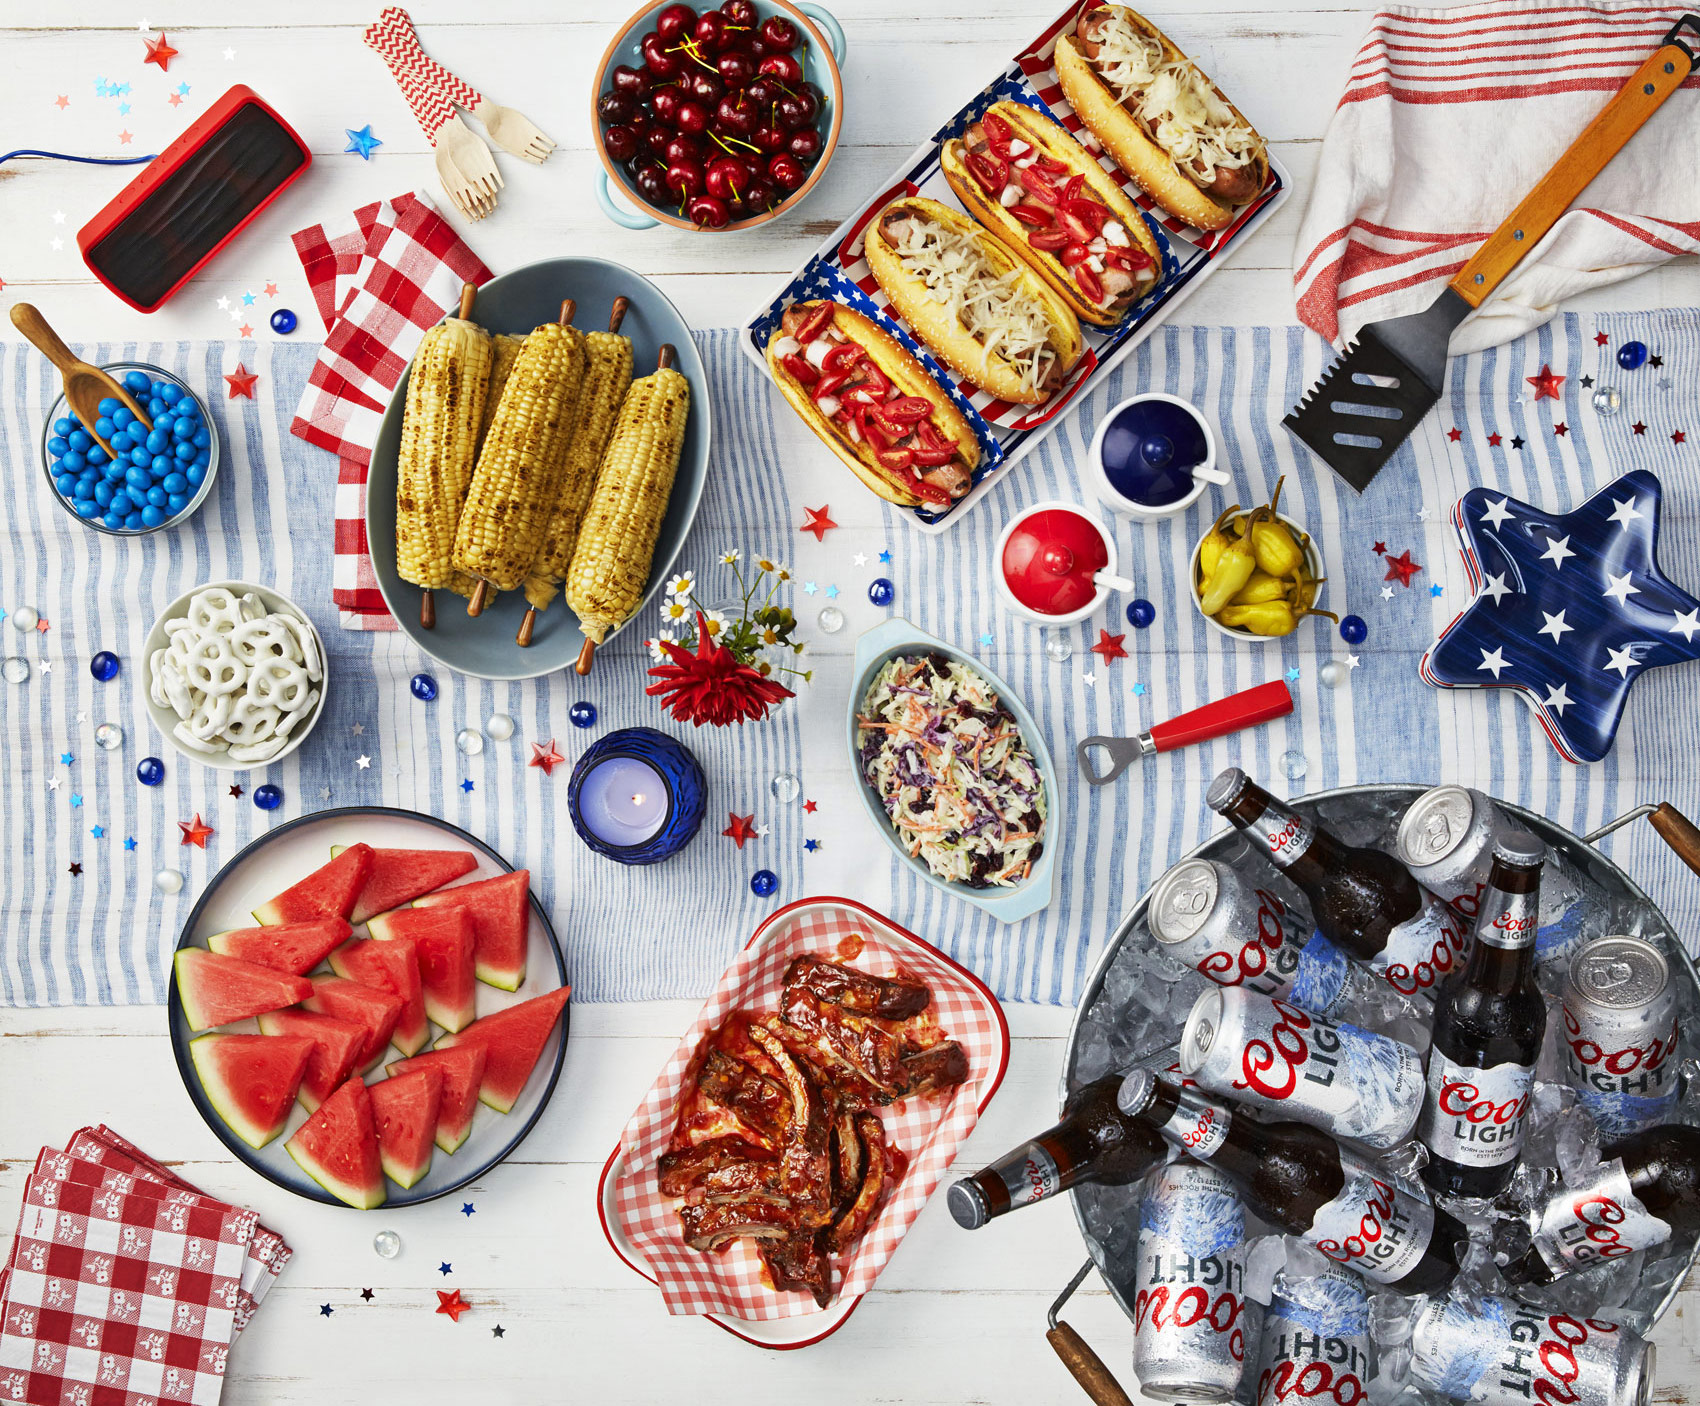 Coors light beer with 4th of July snacks on a picnic table